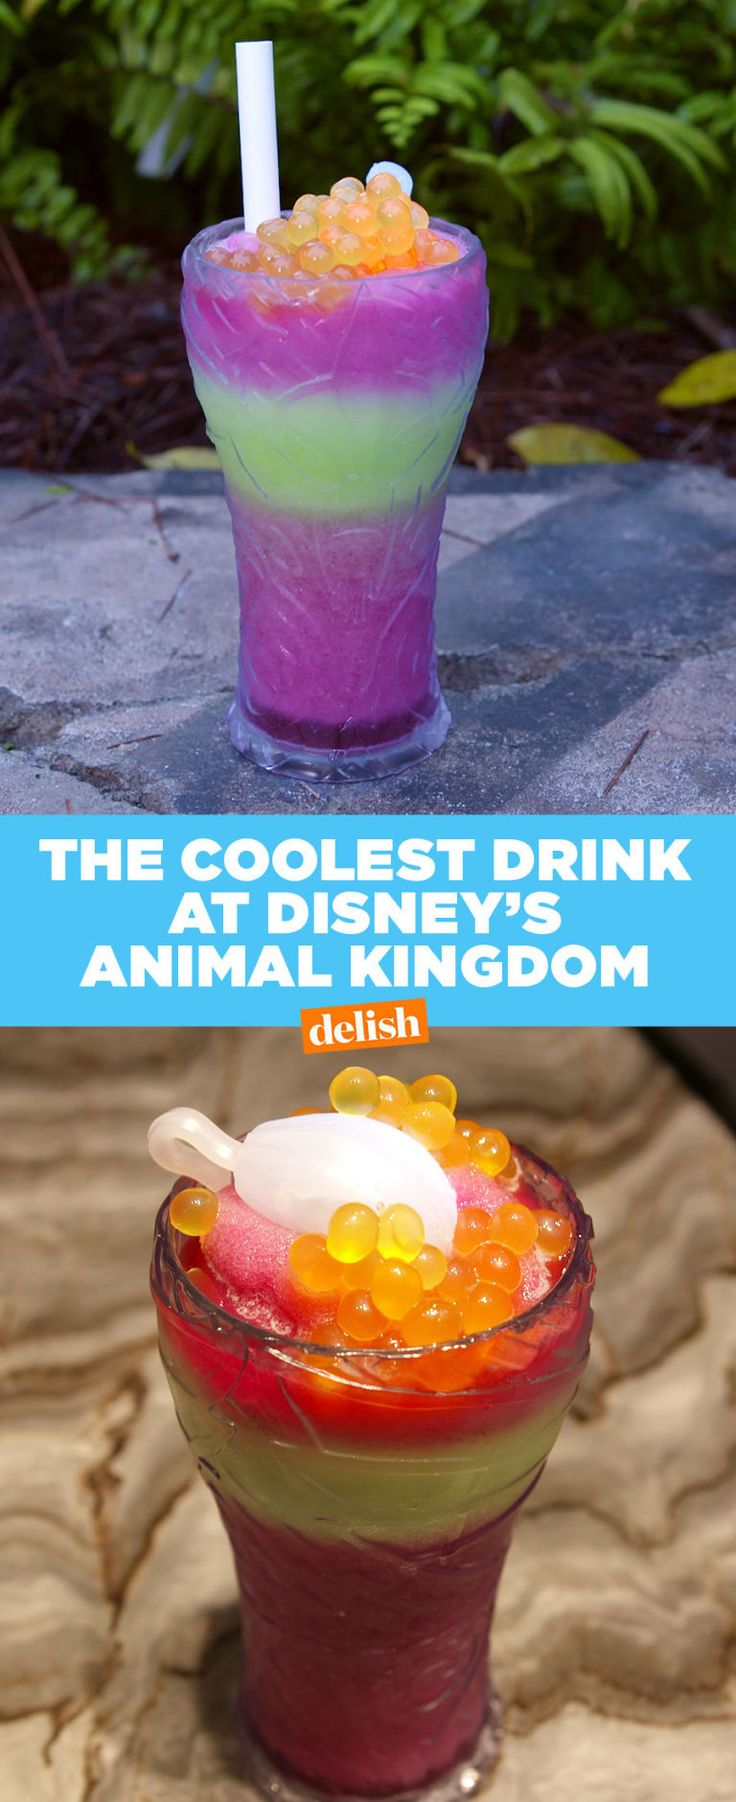 Disney Worlds Newest Drink Has Instagram Freaking Out